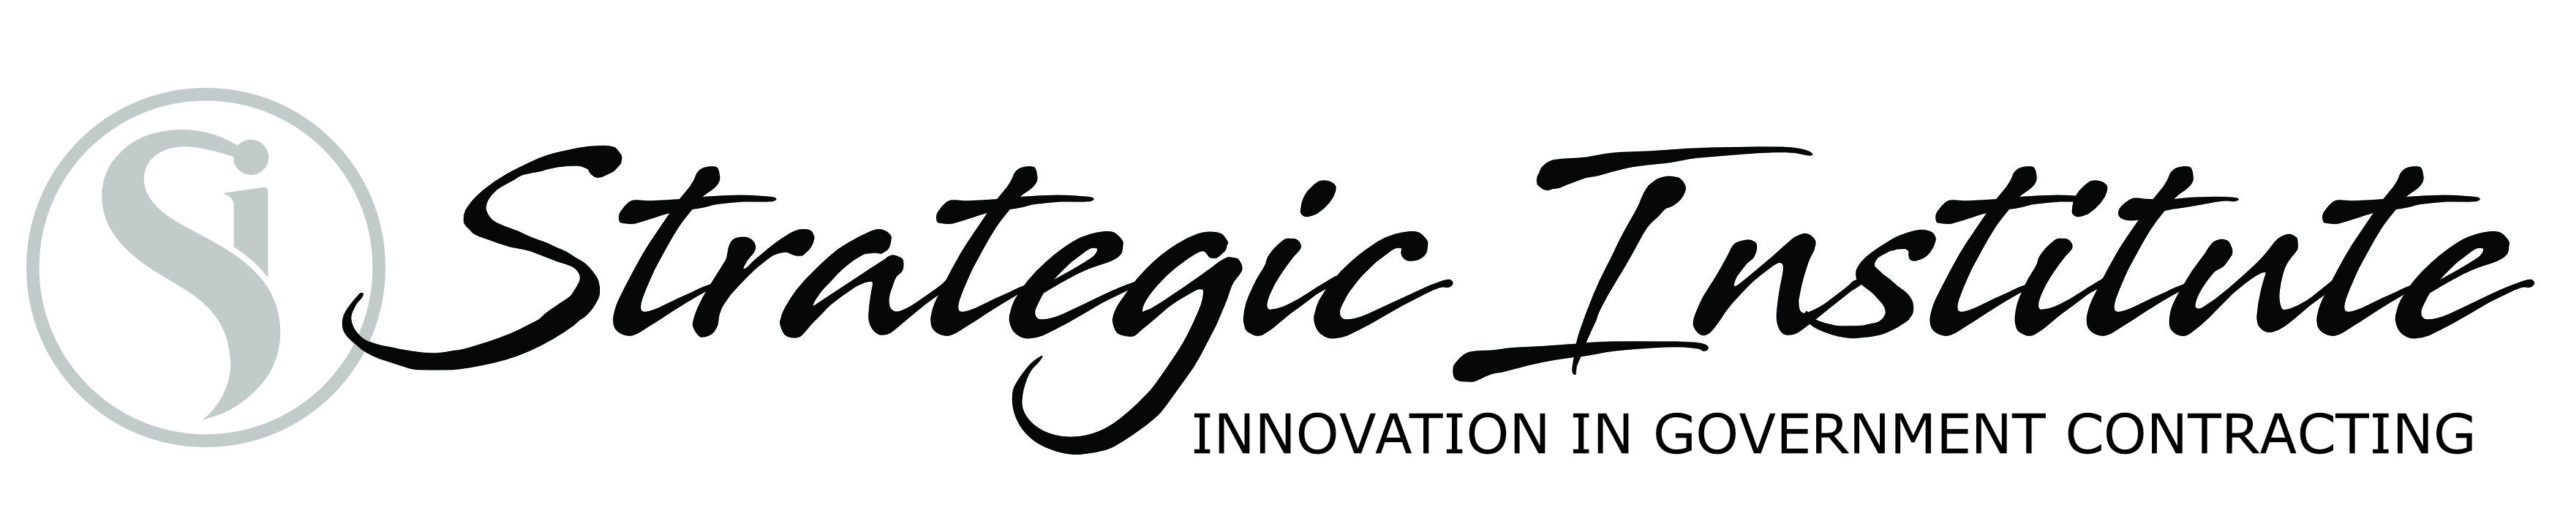 Strategic Institute for Innovation in Government Contracting